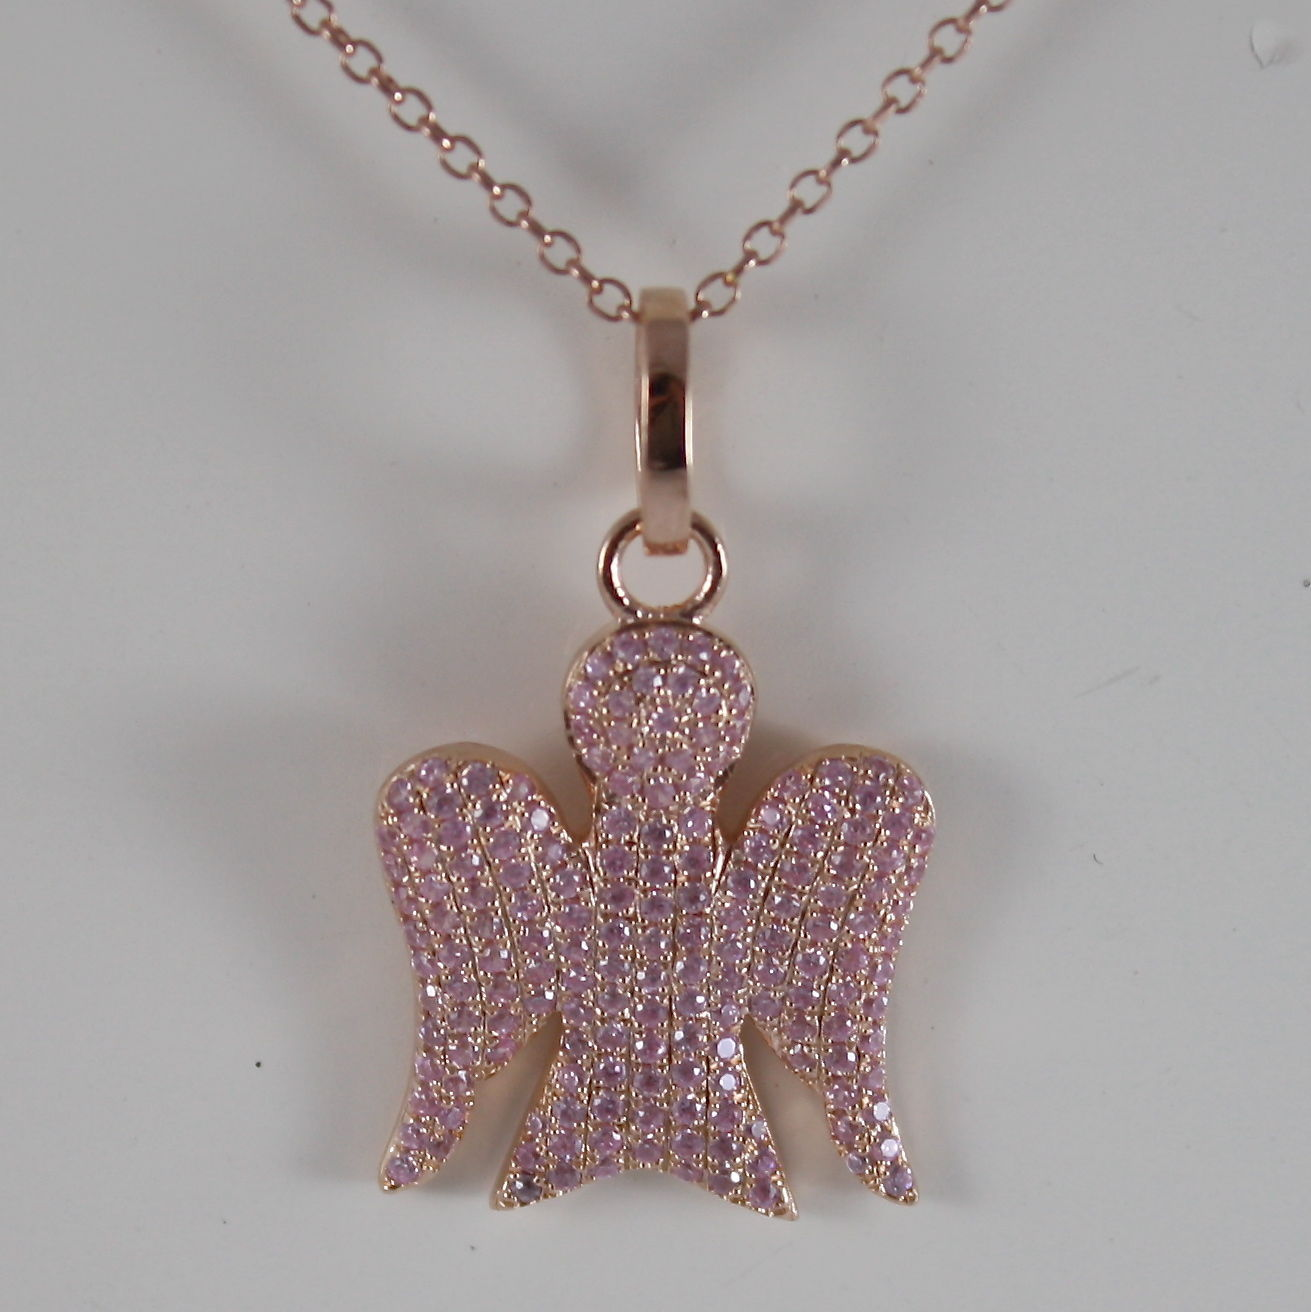 925 SILVER NECKLACE WITH ANGEL PENDANT GIA153 PLA ROSE GOLD BY ROBERTO GIANNOTTI